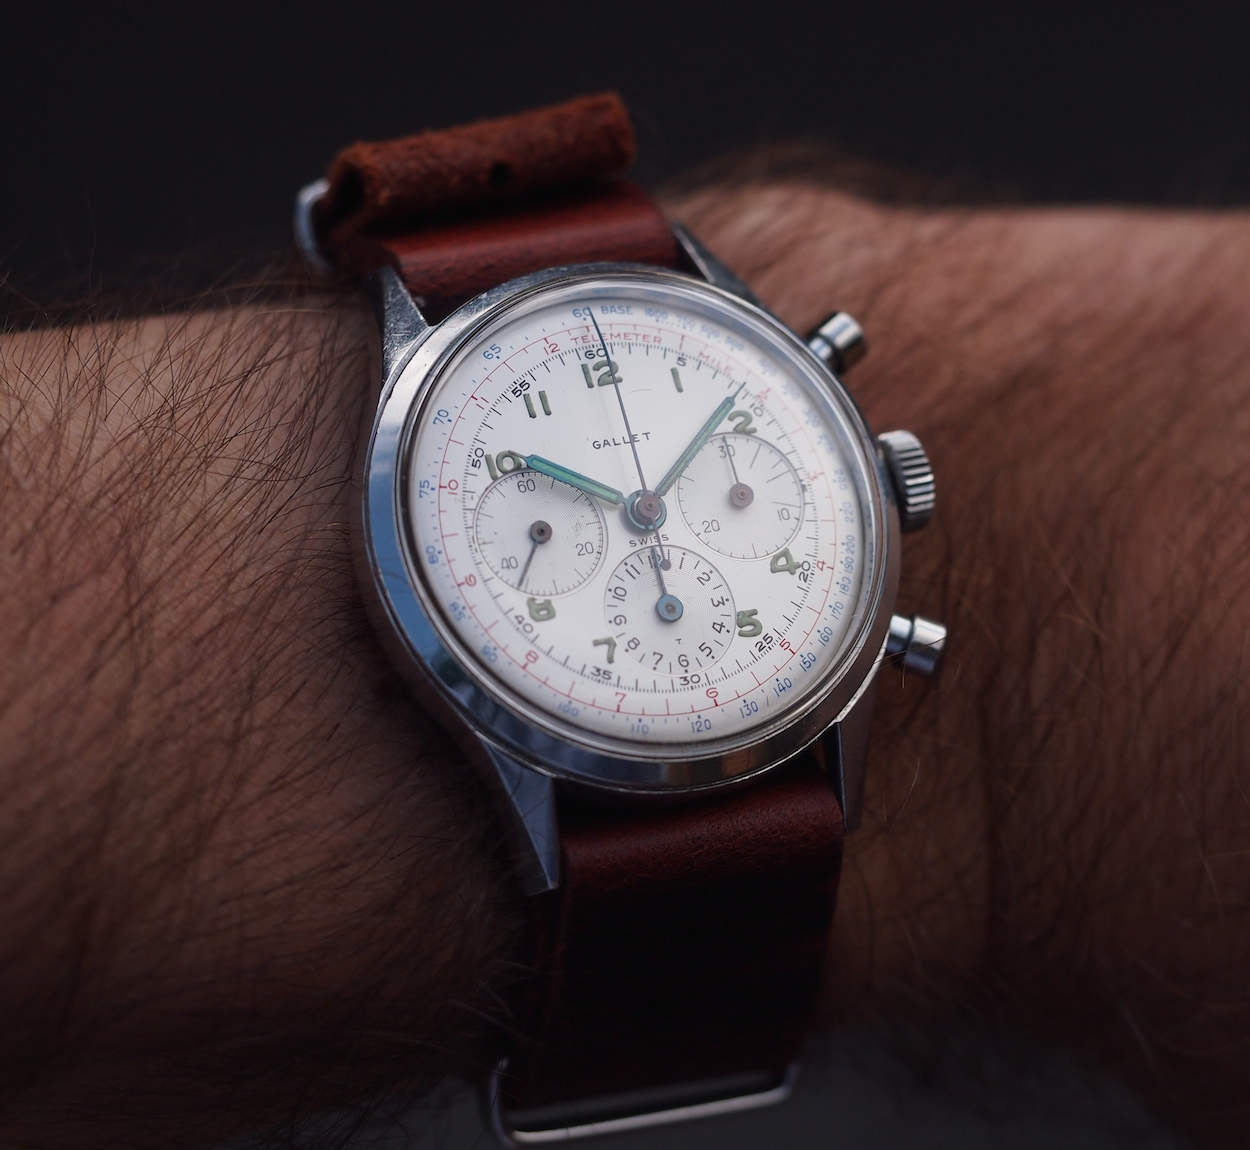 Gallet Multichron on the wrist